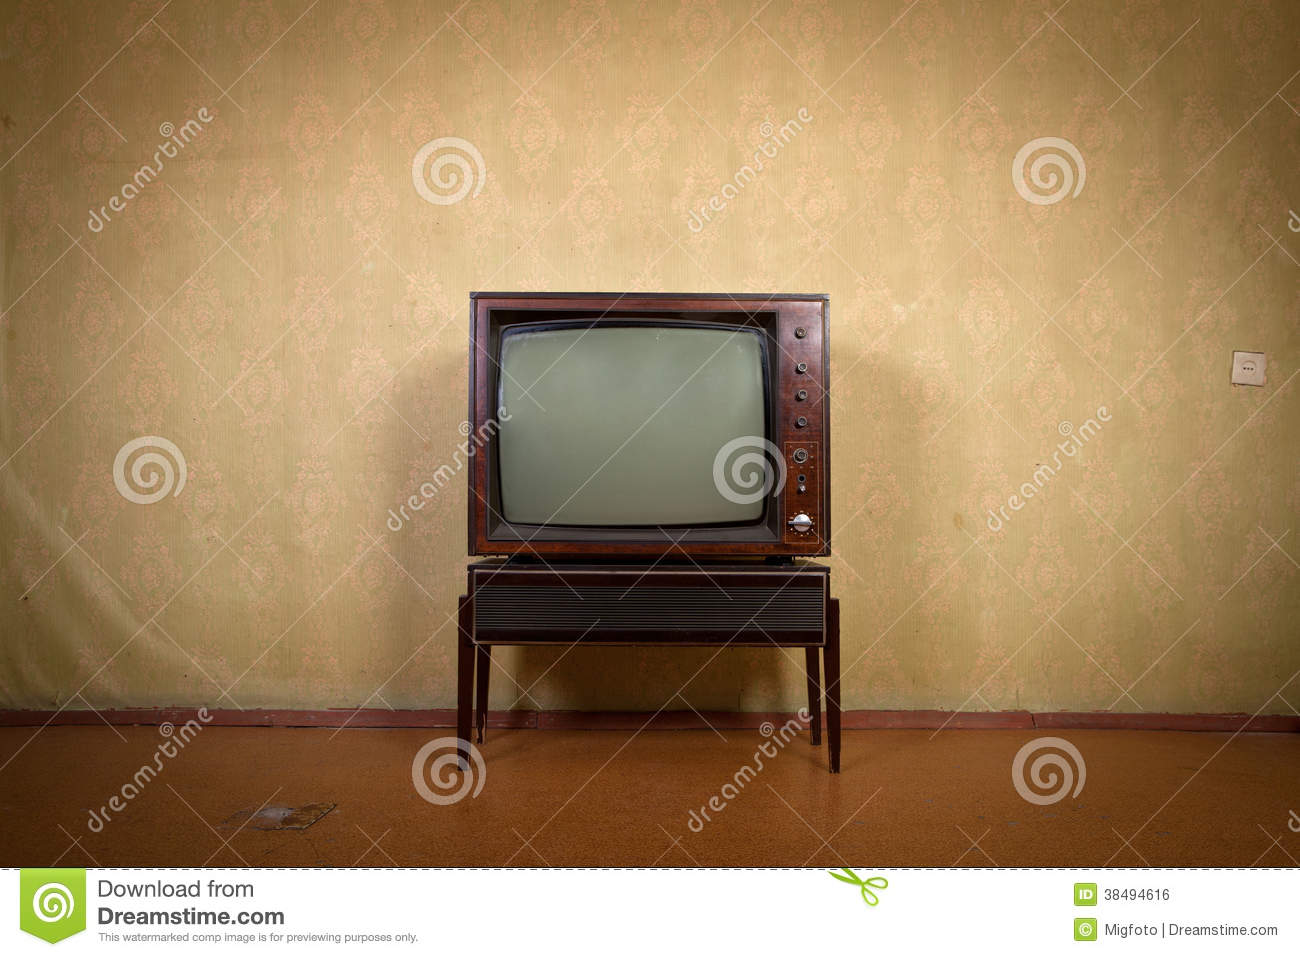 Retro TV on a background of vintage wallpaper in old room with ...